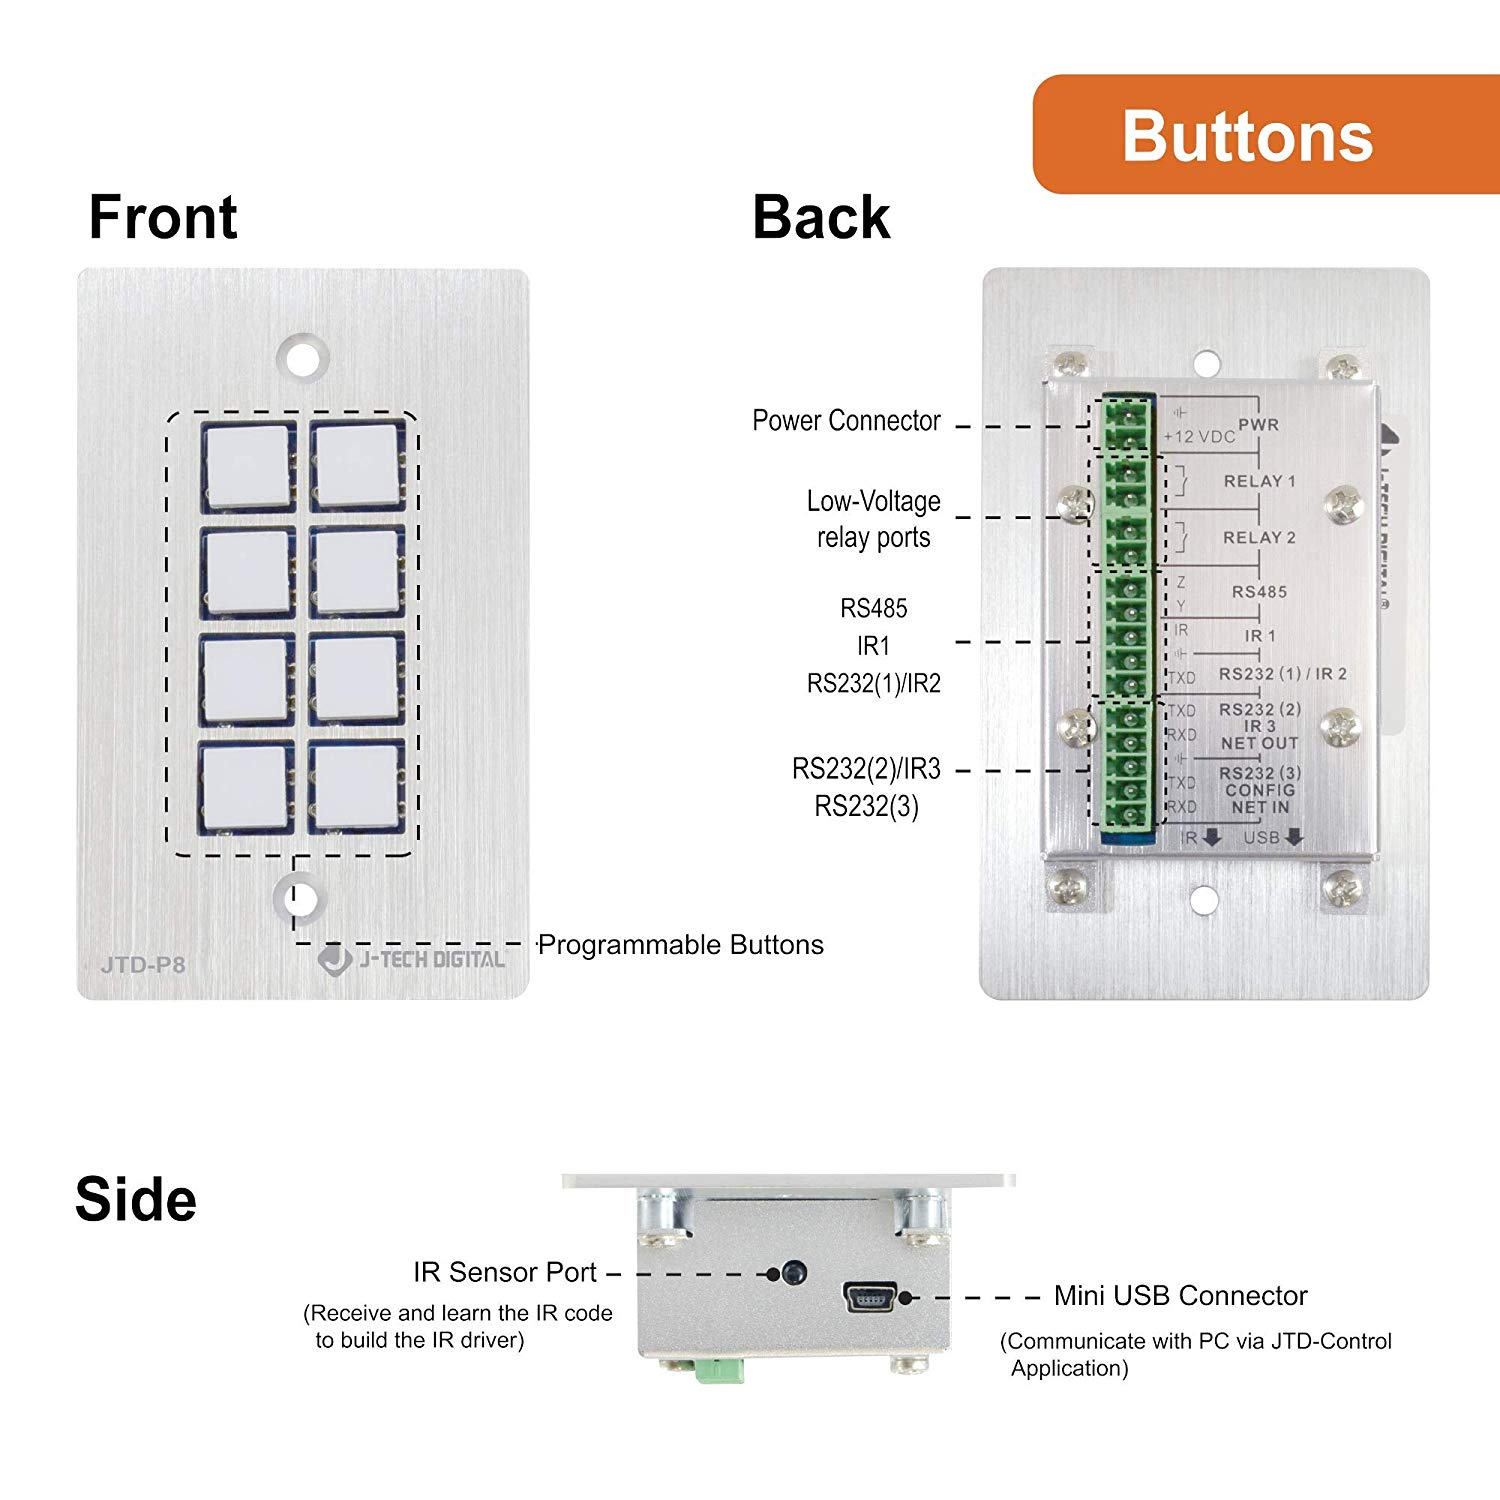 8-Button Control Panel Wall Plate [JTD-P8]